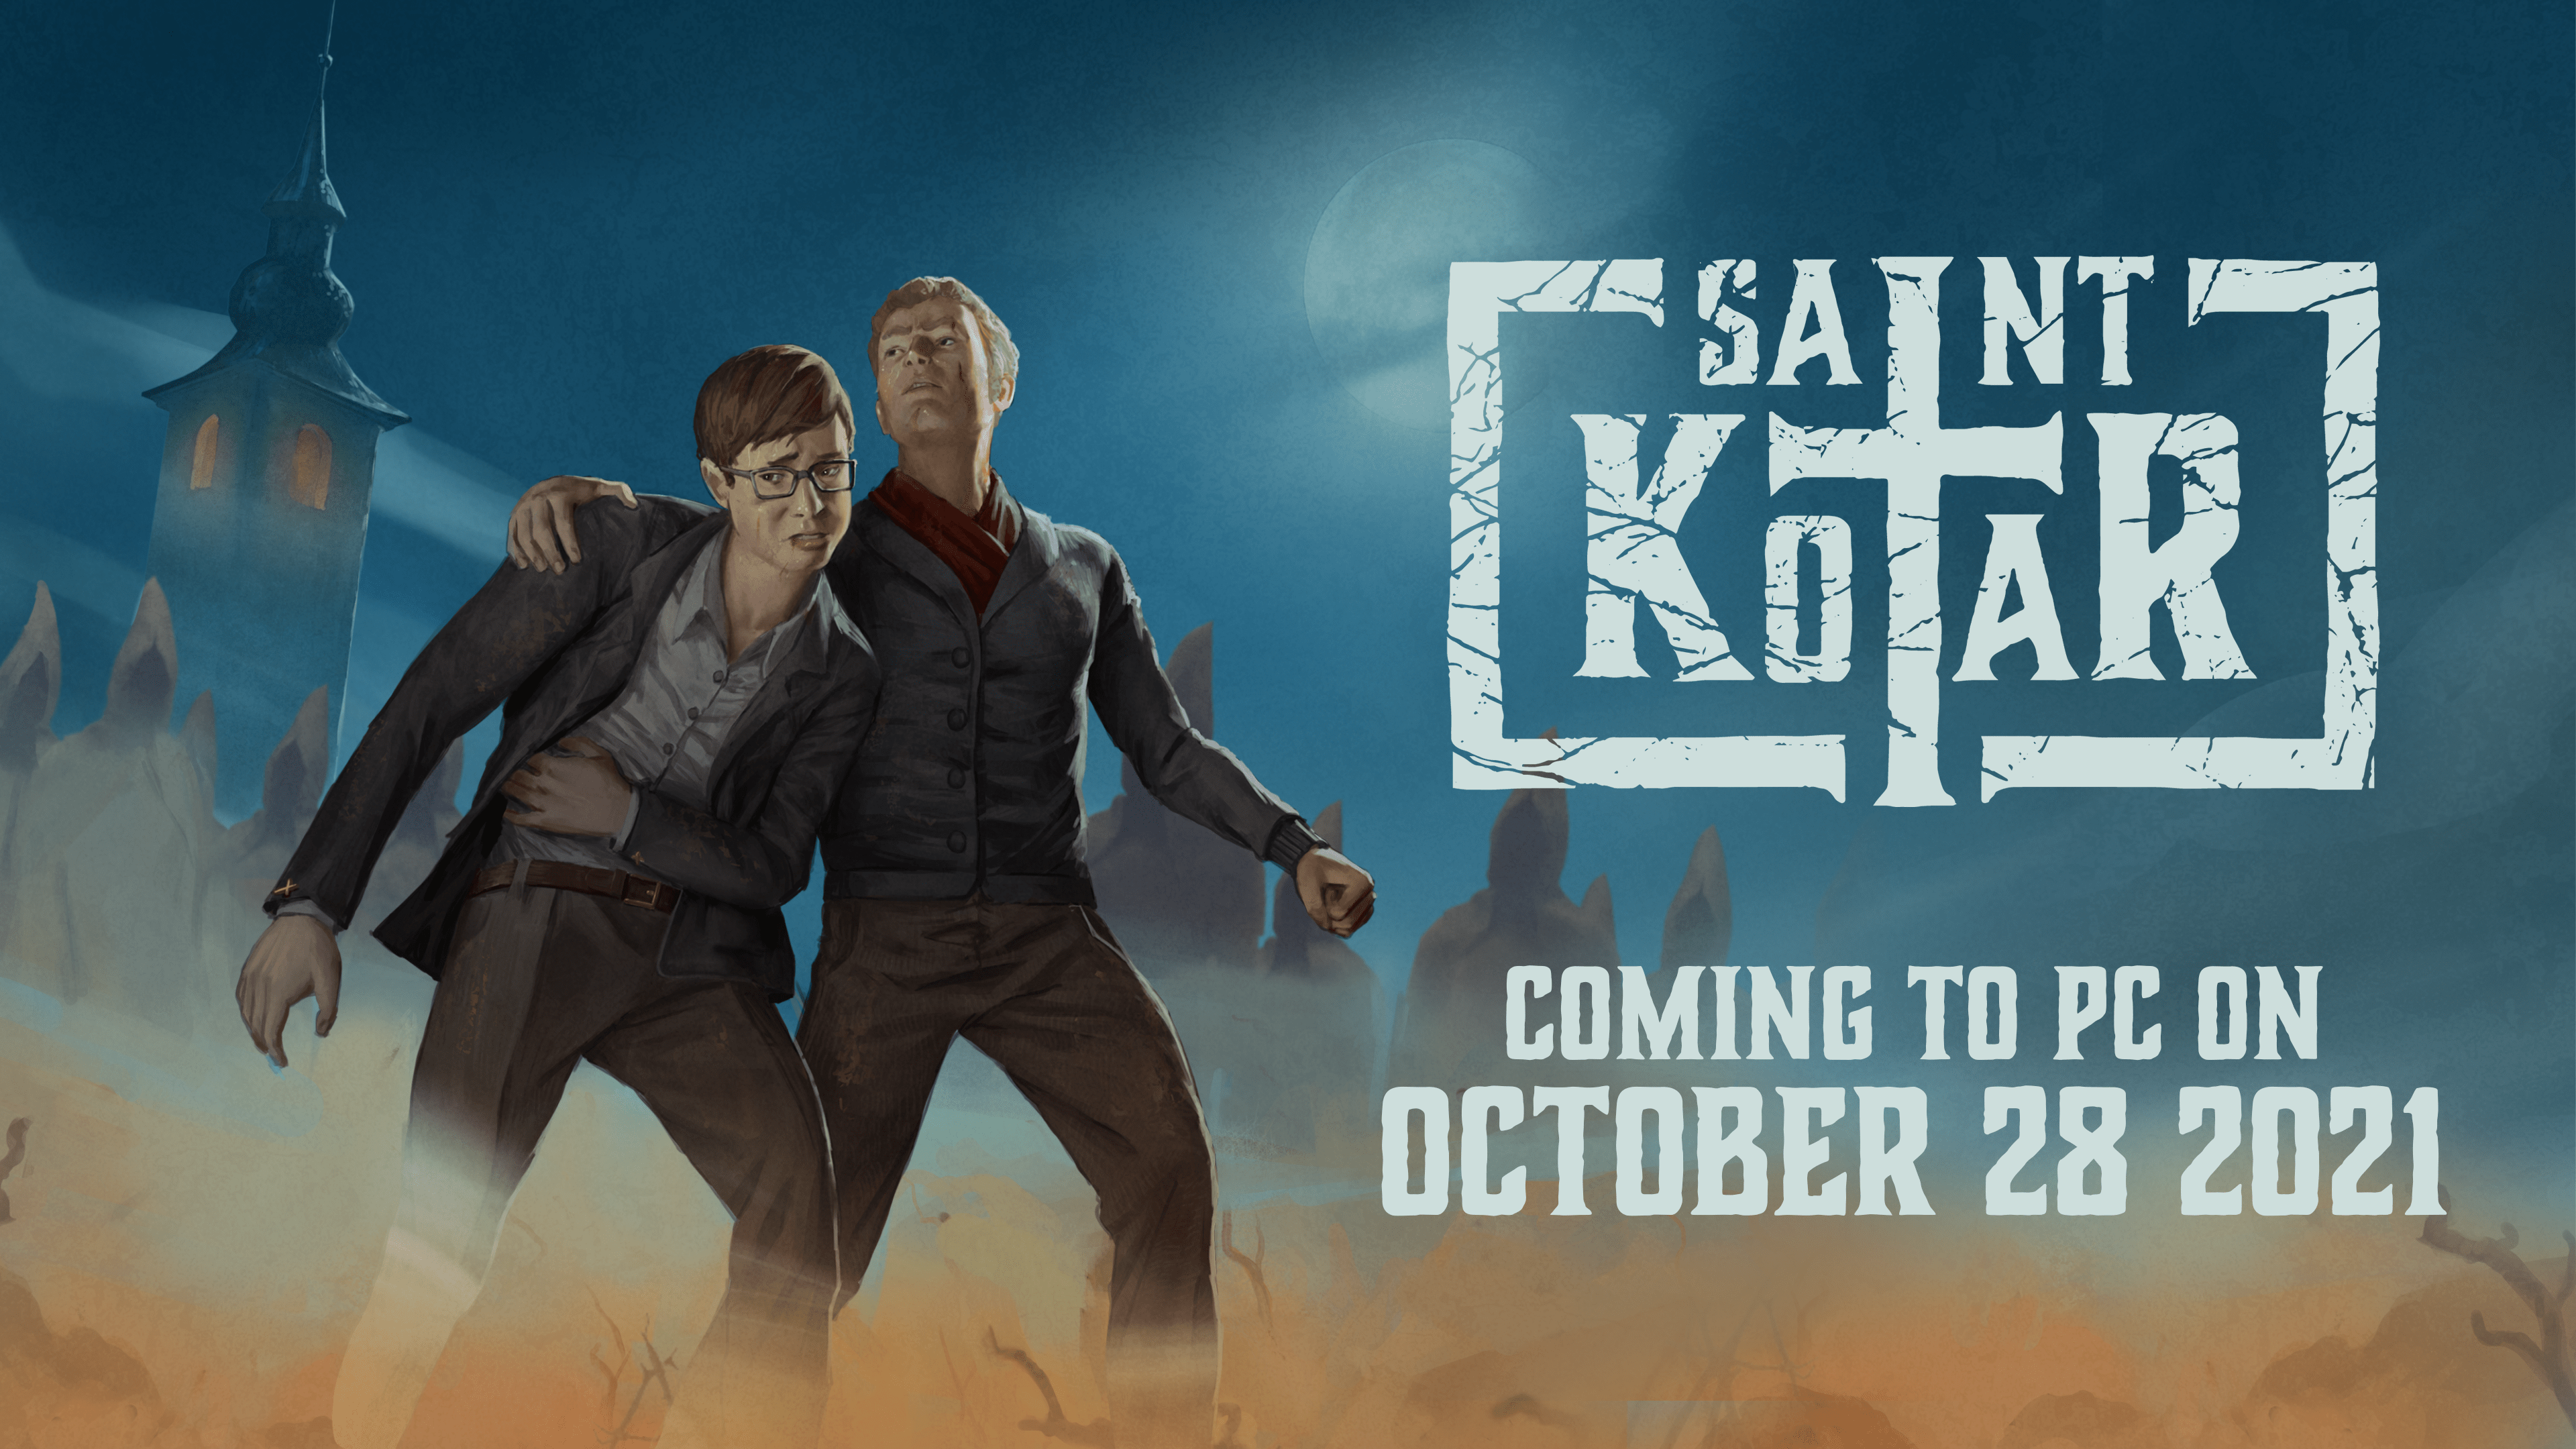 Point & click psychological horror detective adventure 'Saint Kotar' to launch on October 28